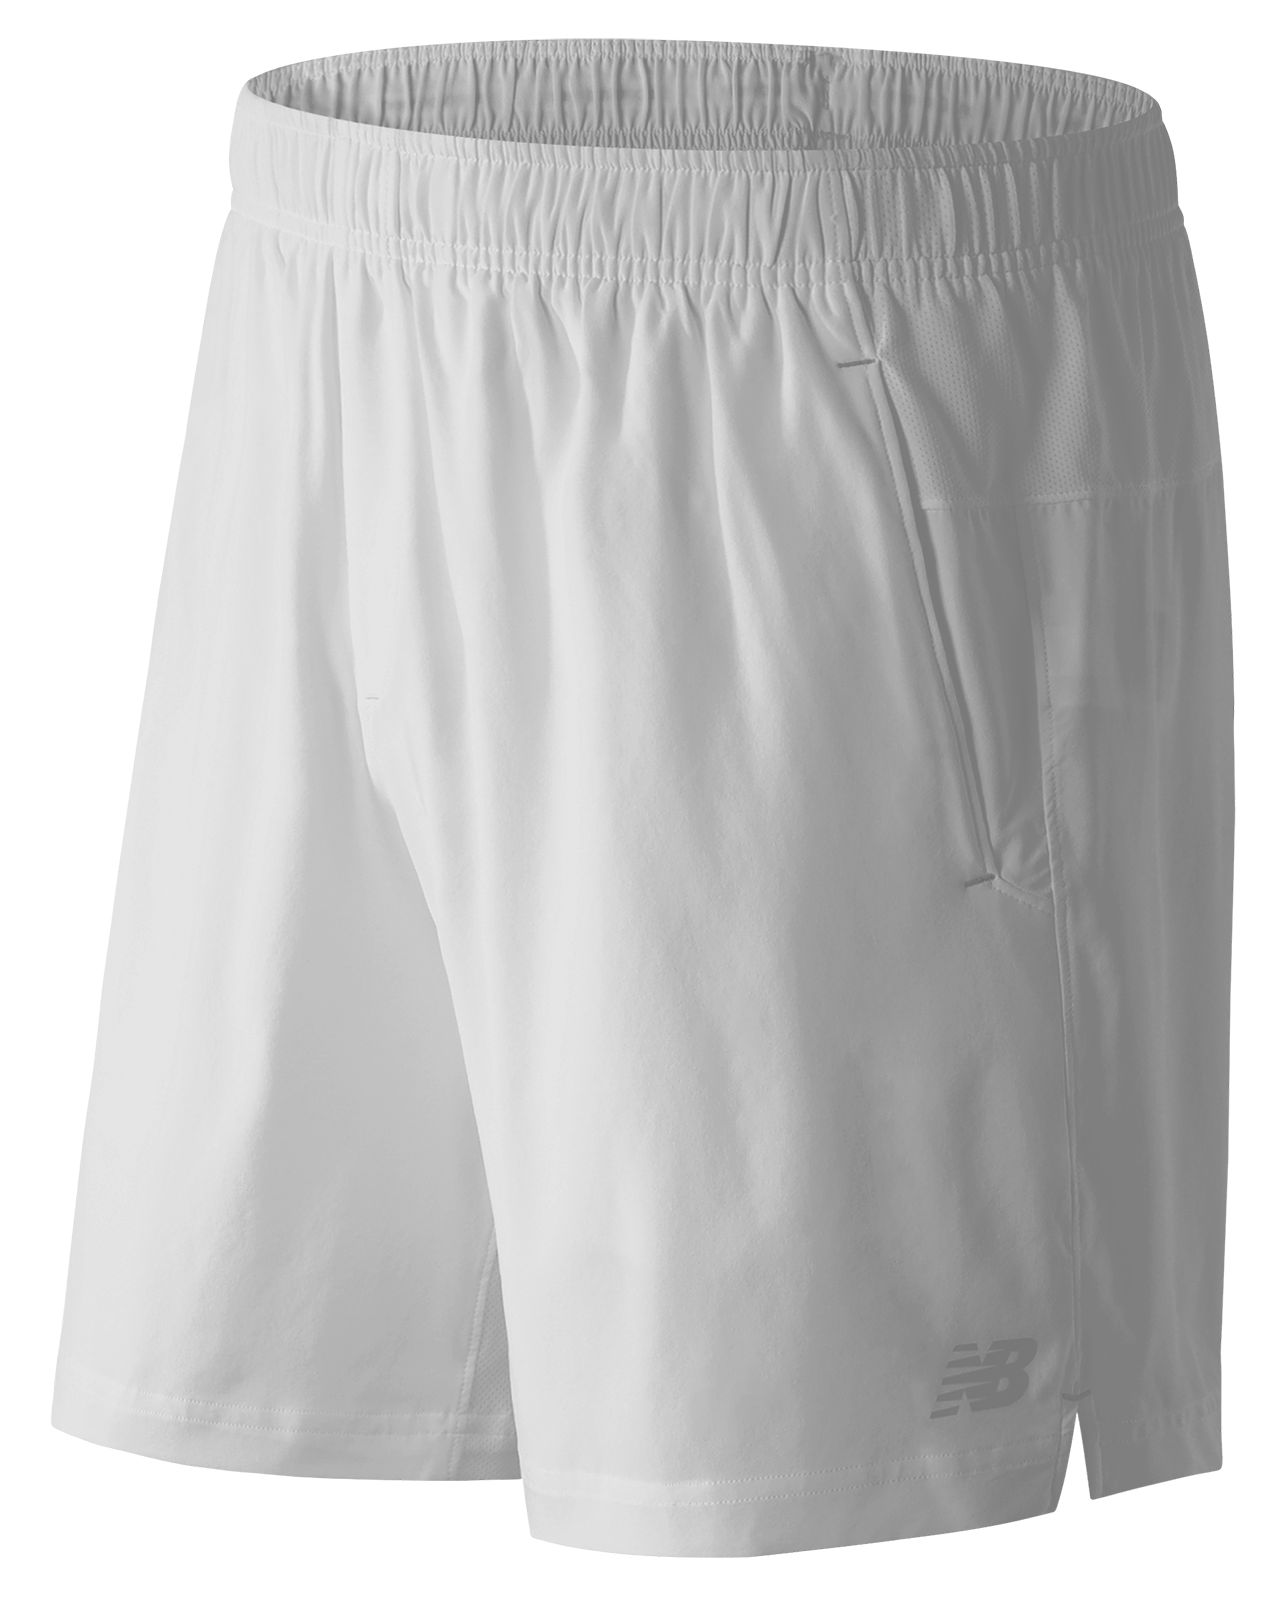 New Balance : 7 Inch Challenger Short : Men's Tennis : MS61417WT